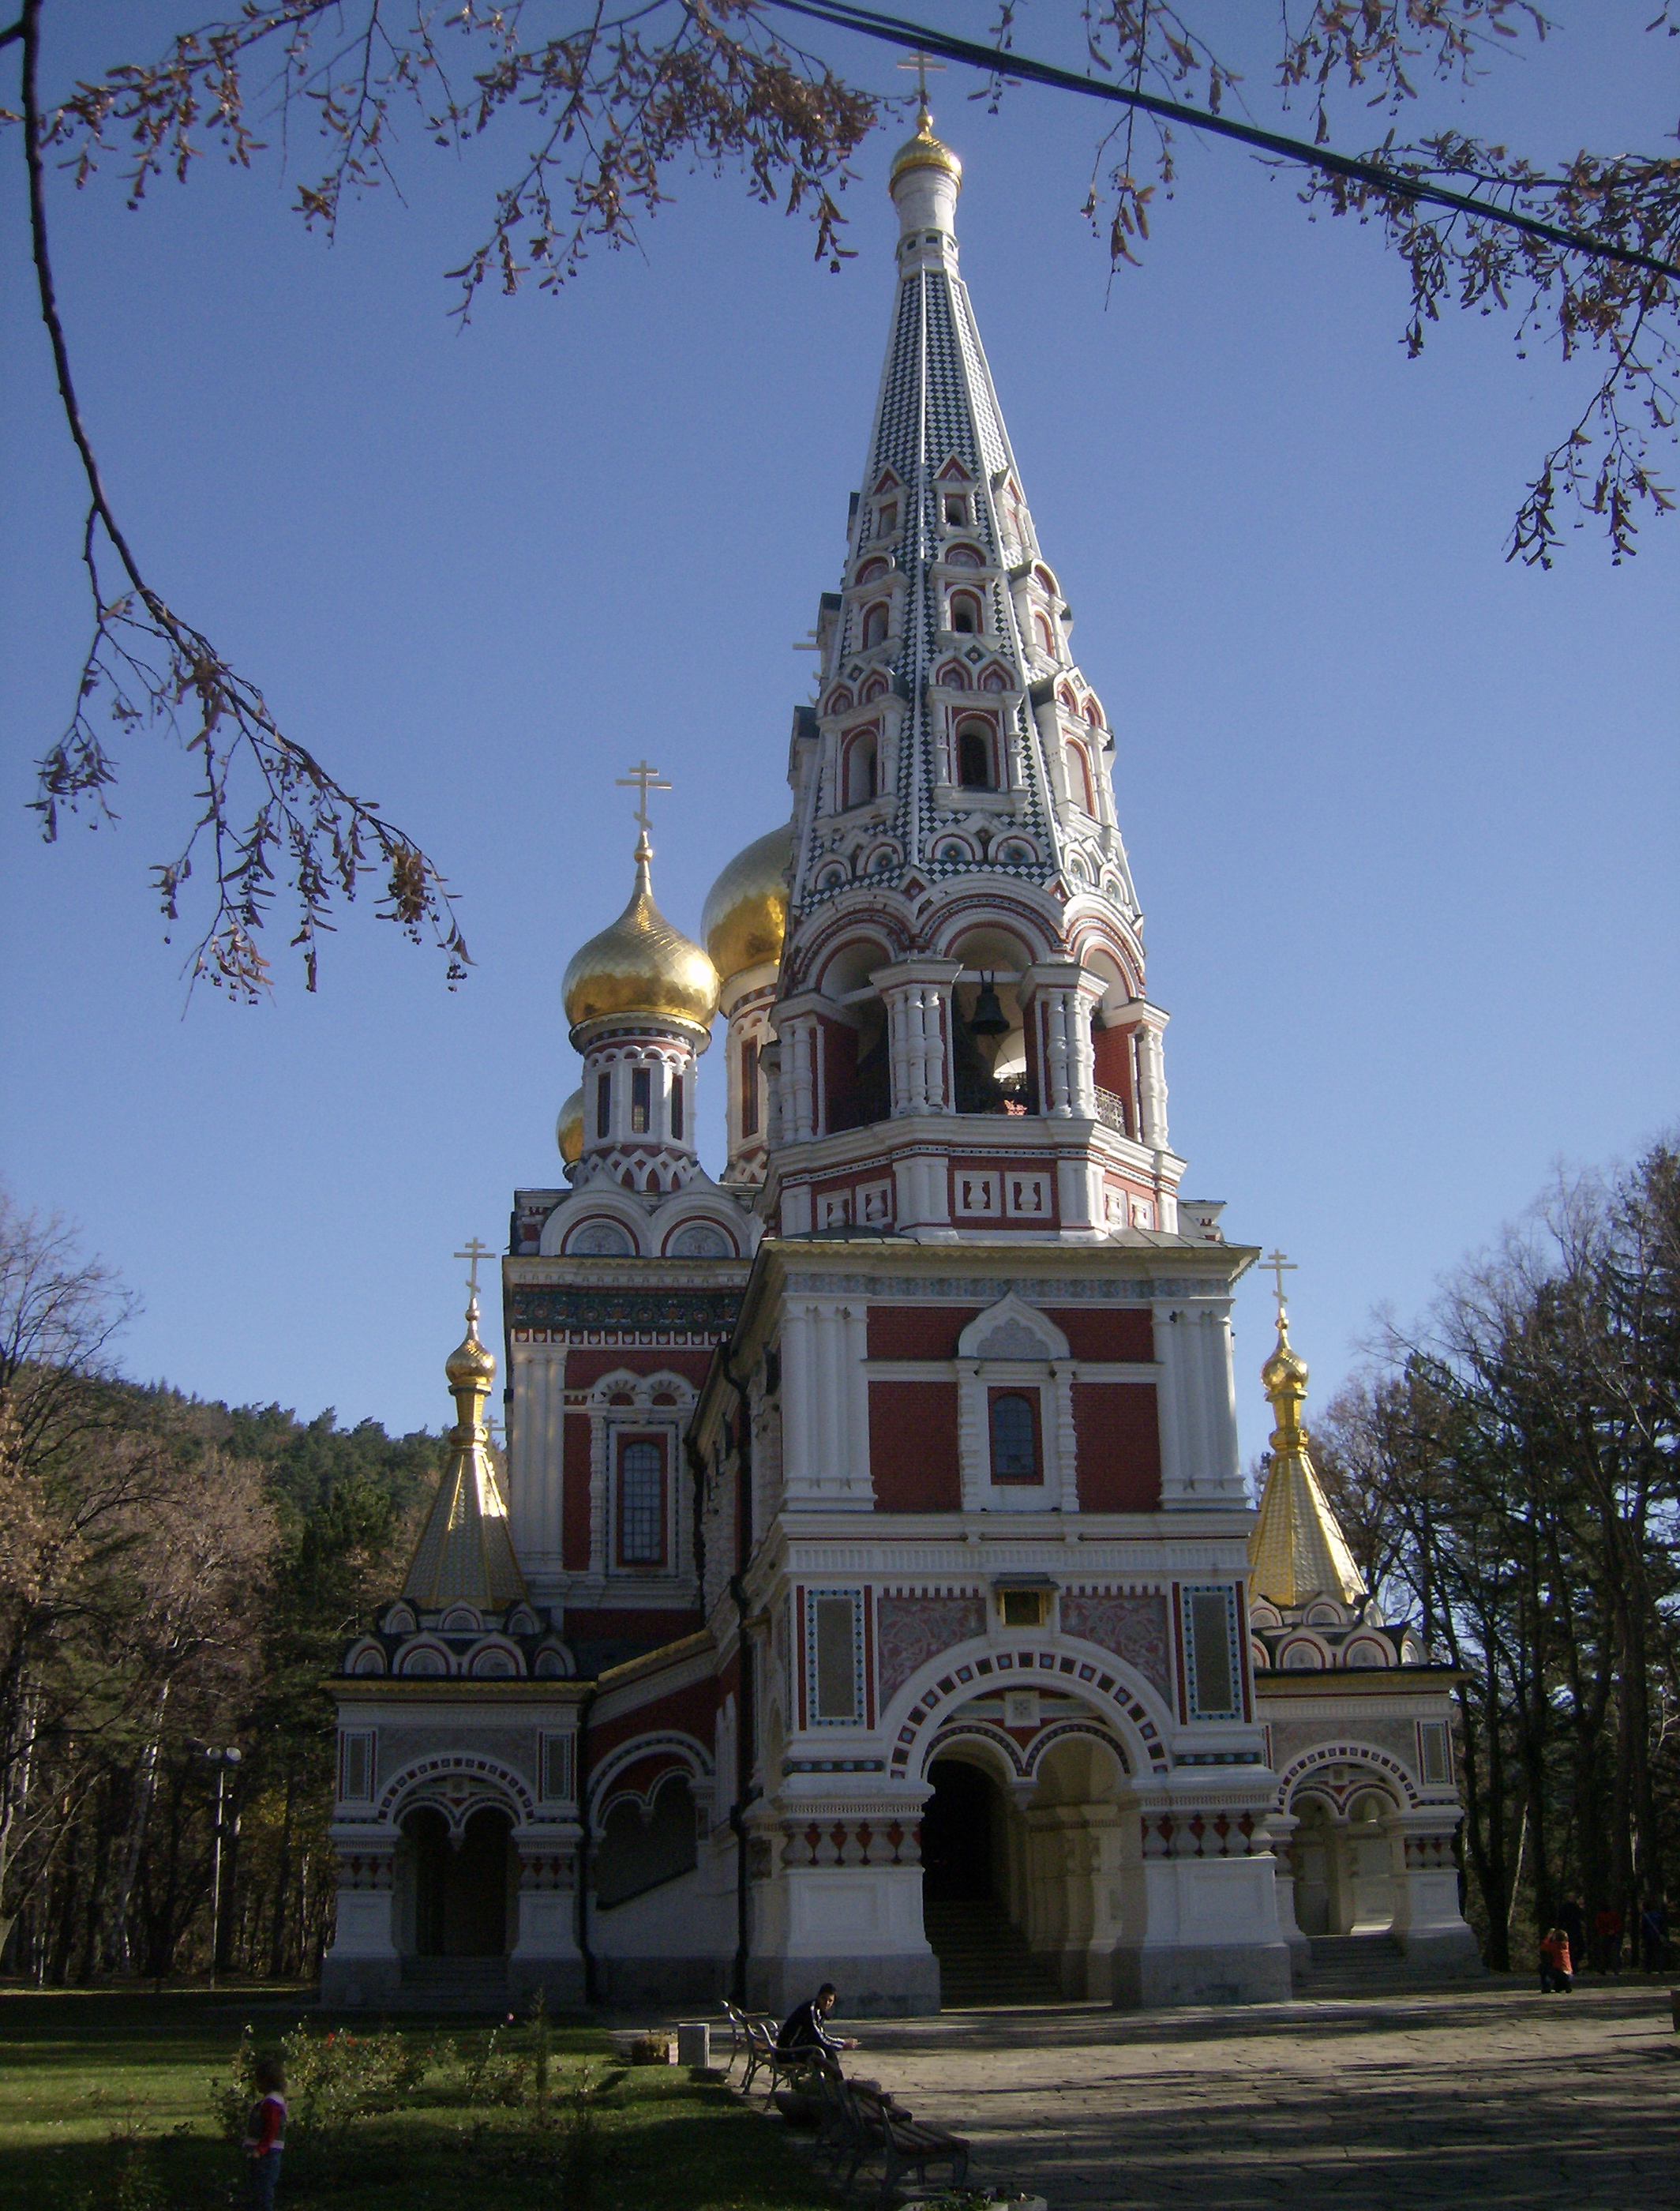 Shipka Memorial Church, Rozhdestvo Hristovo - Birth of Christ cyrkva picture